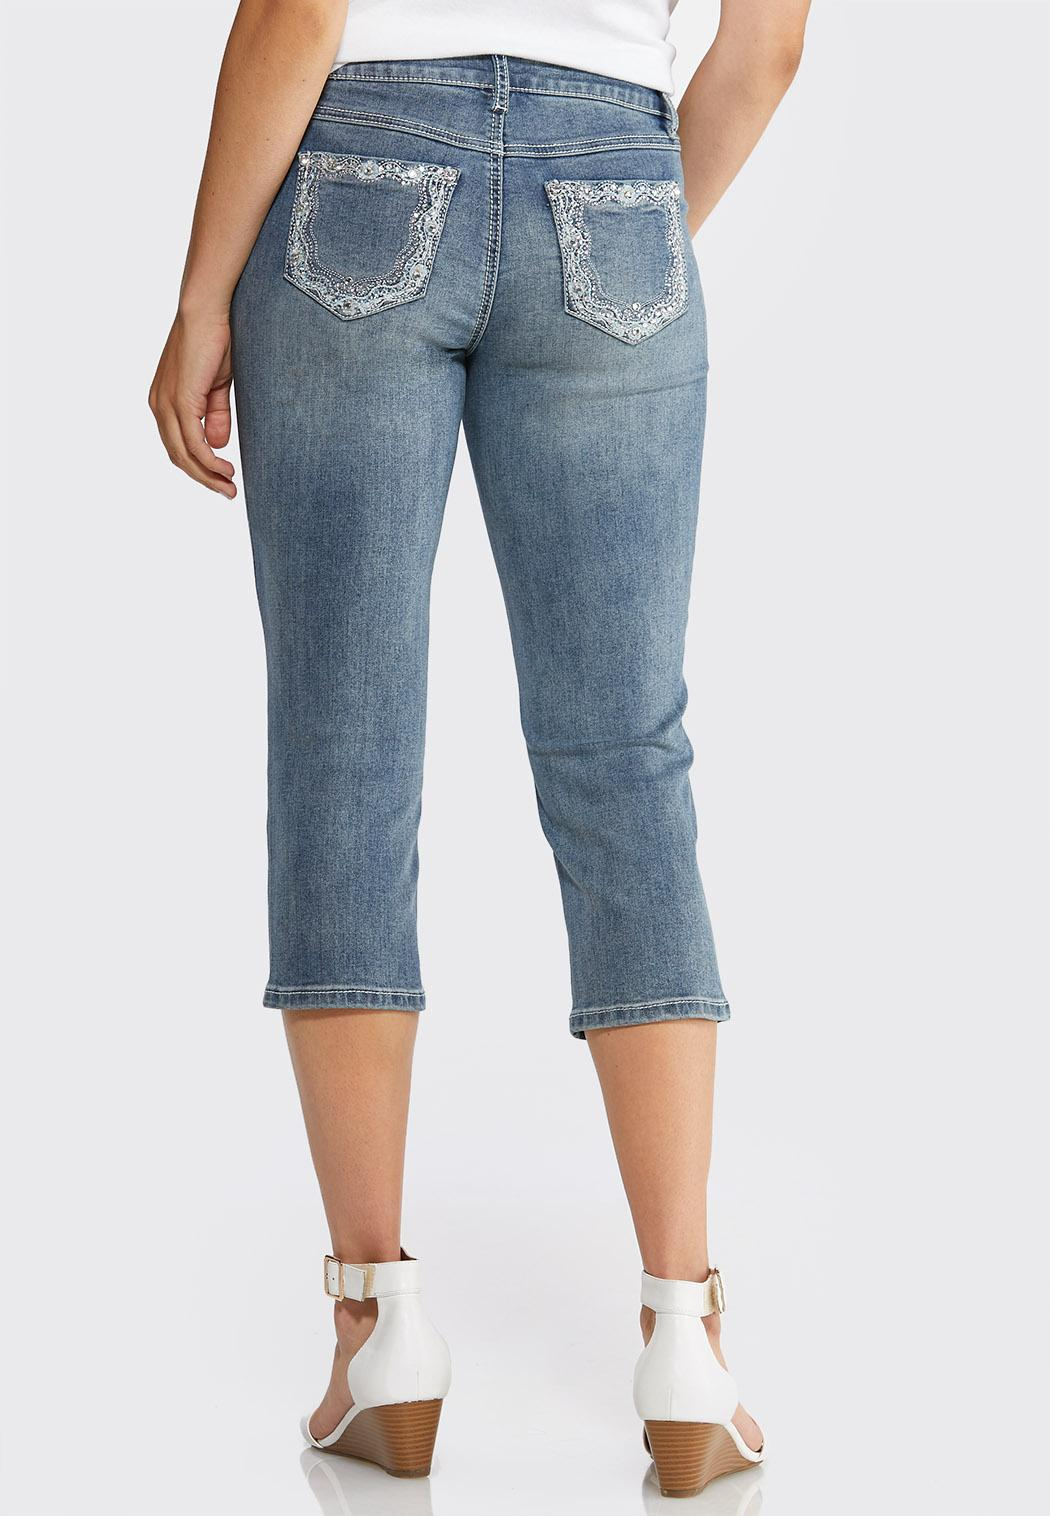 Petite Cropped Floral Rhinestone Jeans